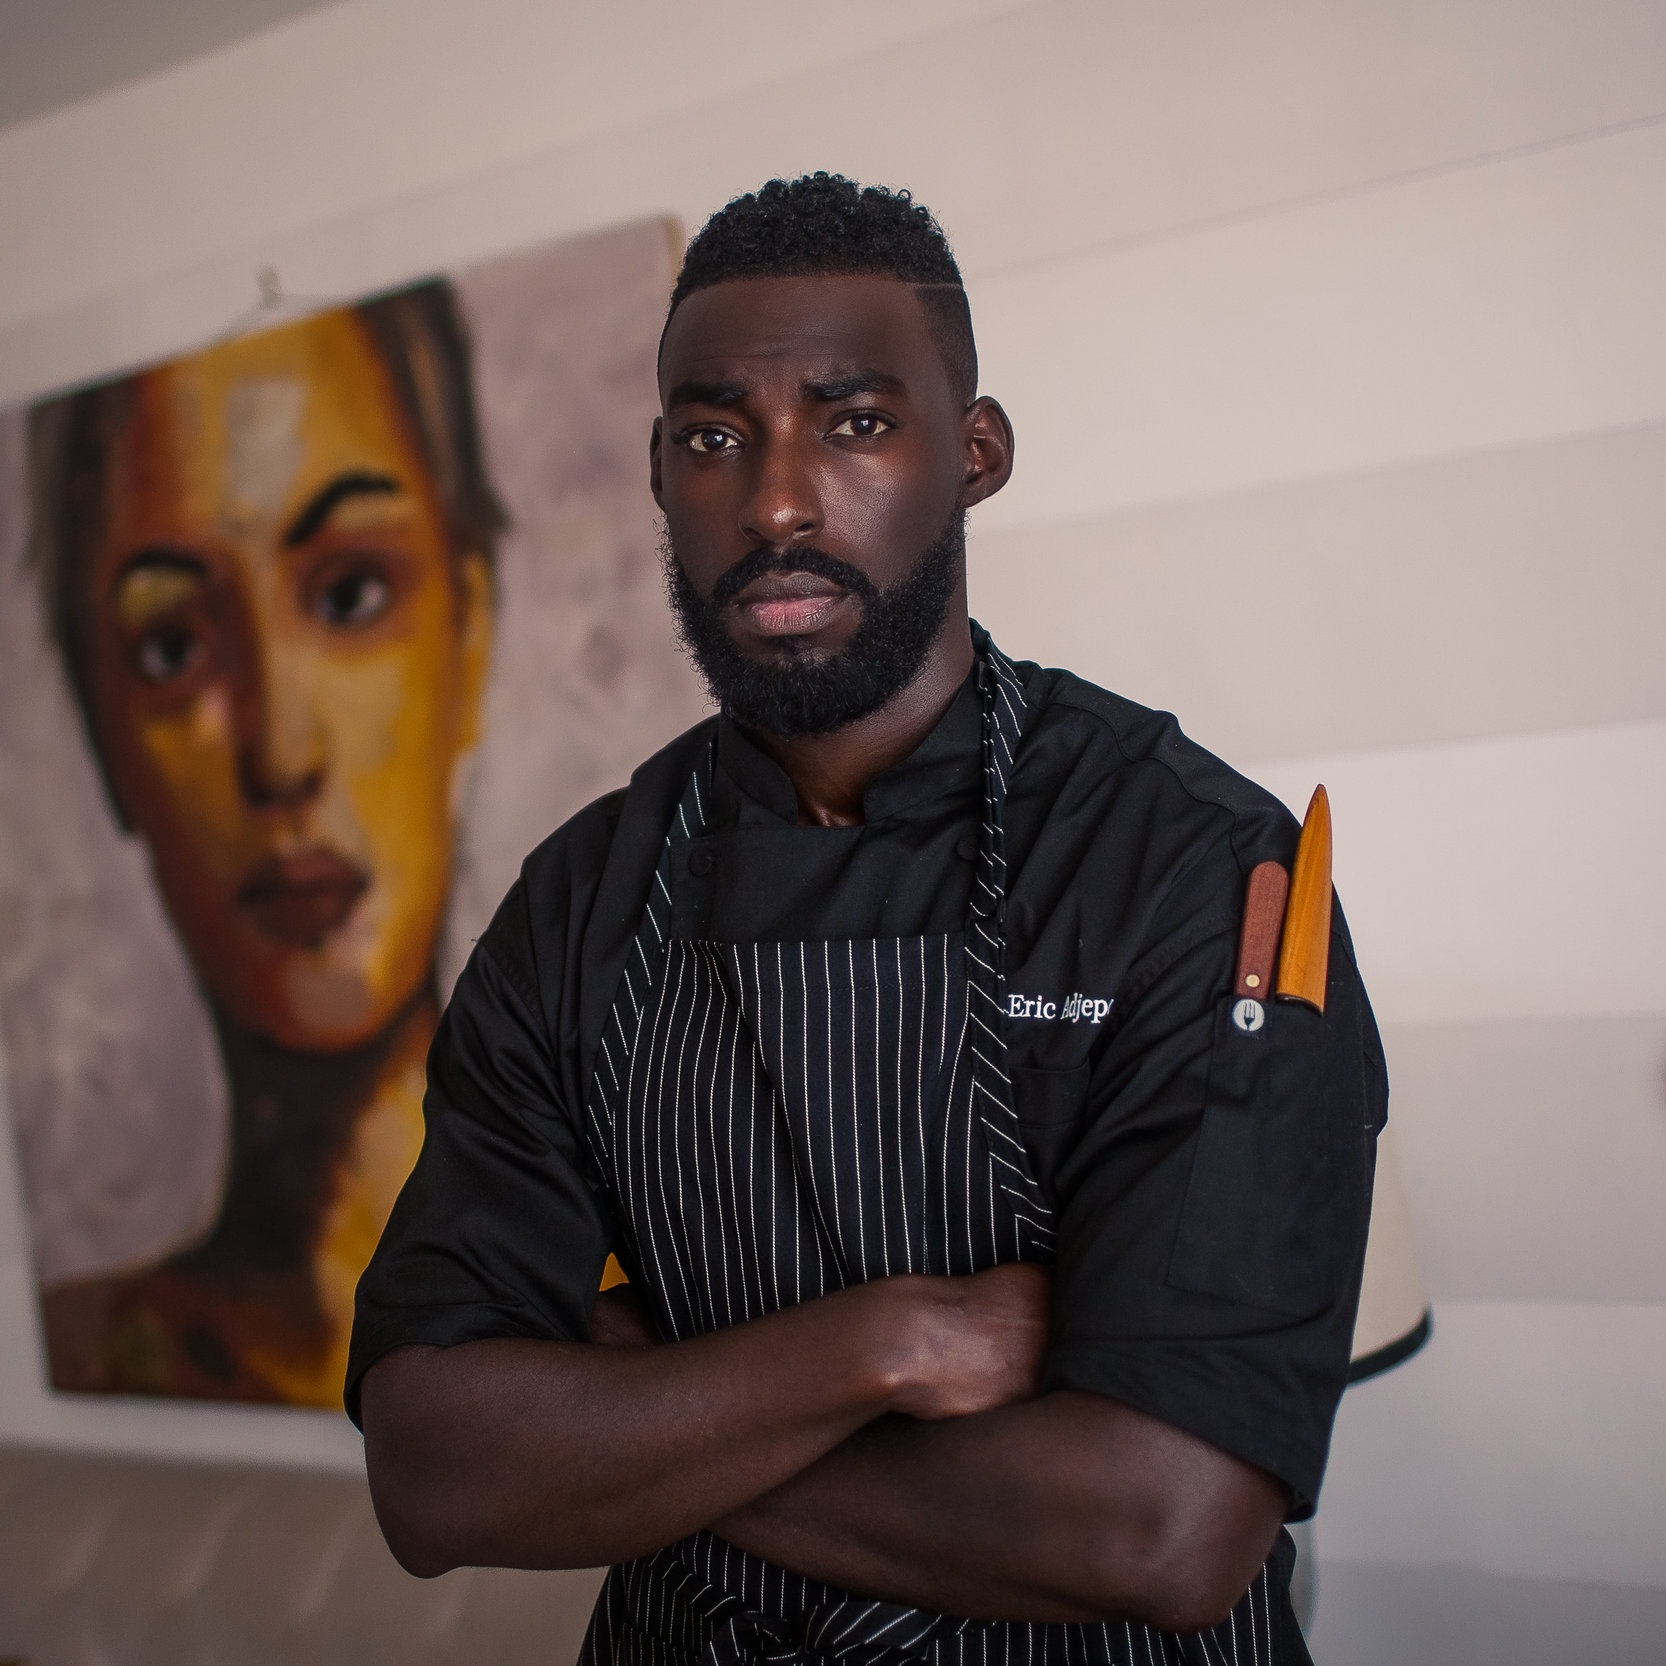 Eric Adjepong - Chef and Owner of Pinch and Plate